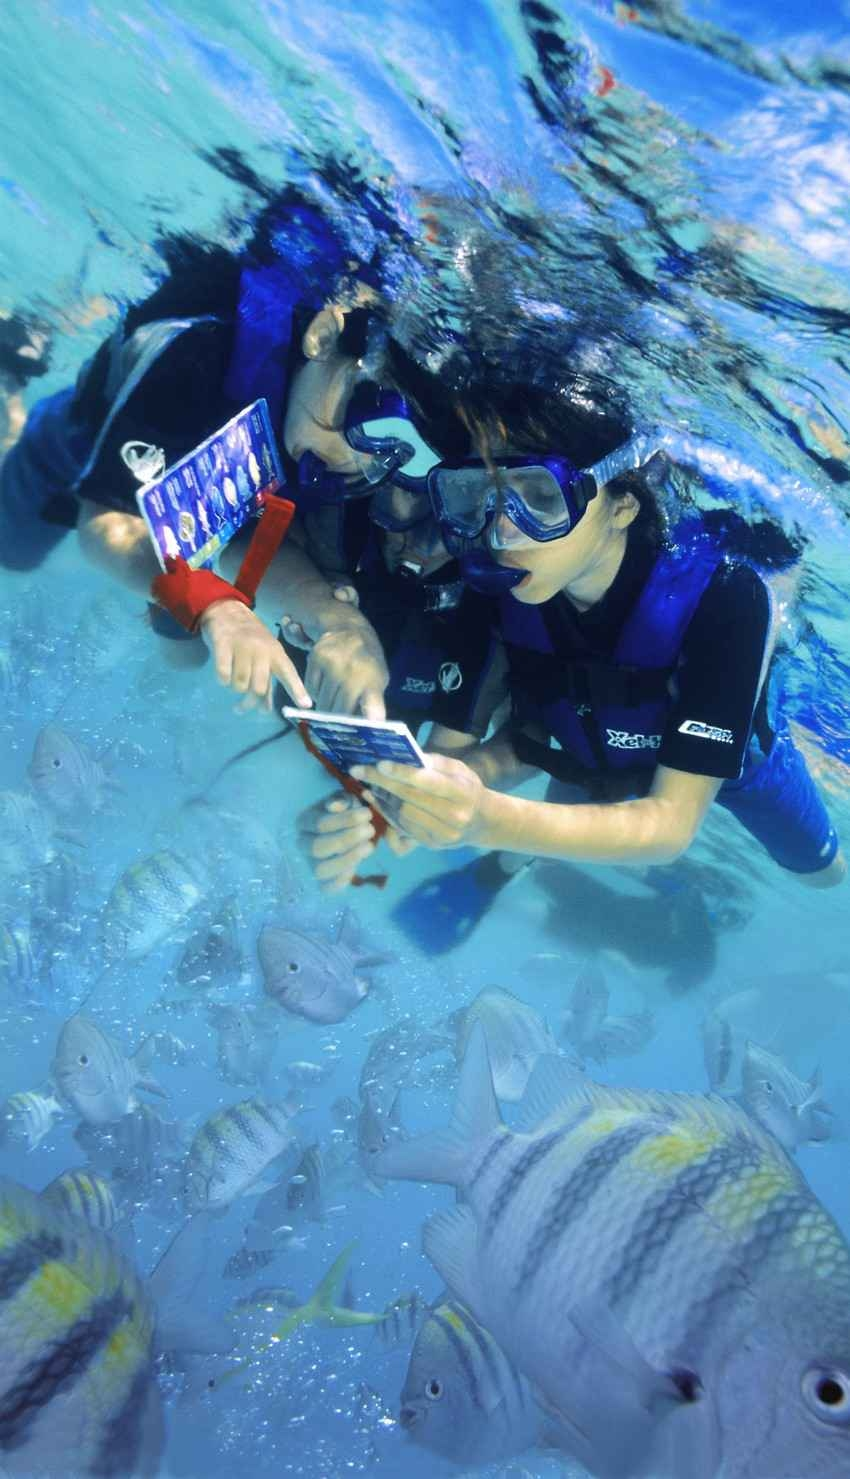 Several tourists snorkeling near Playa Del Carmen holding a waterproof underwater guide.